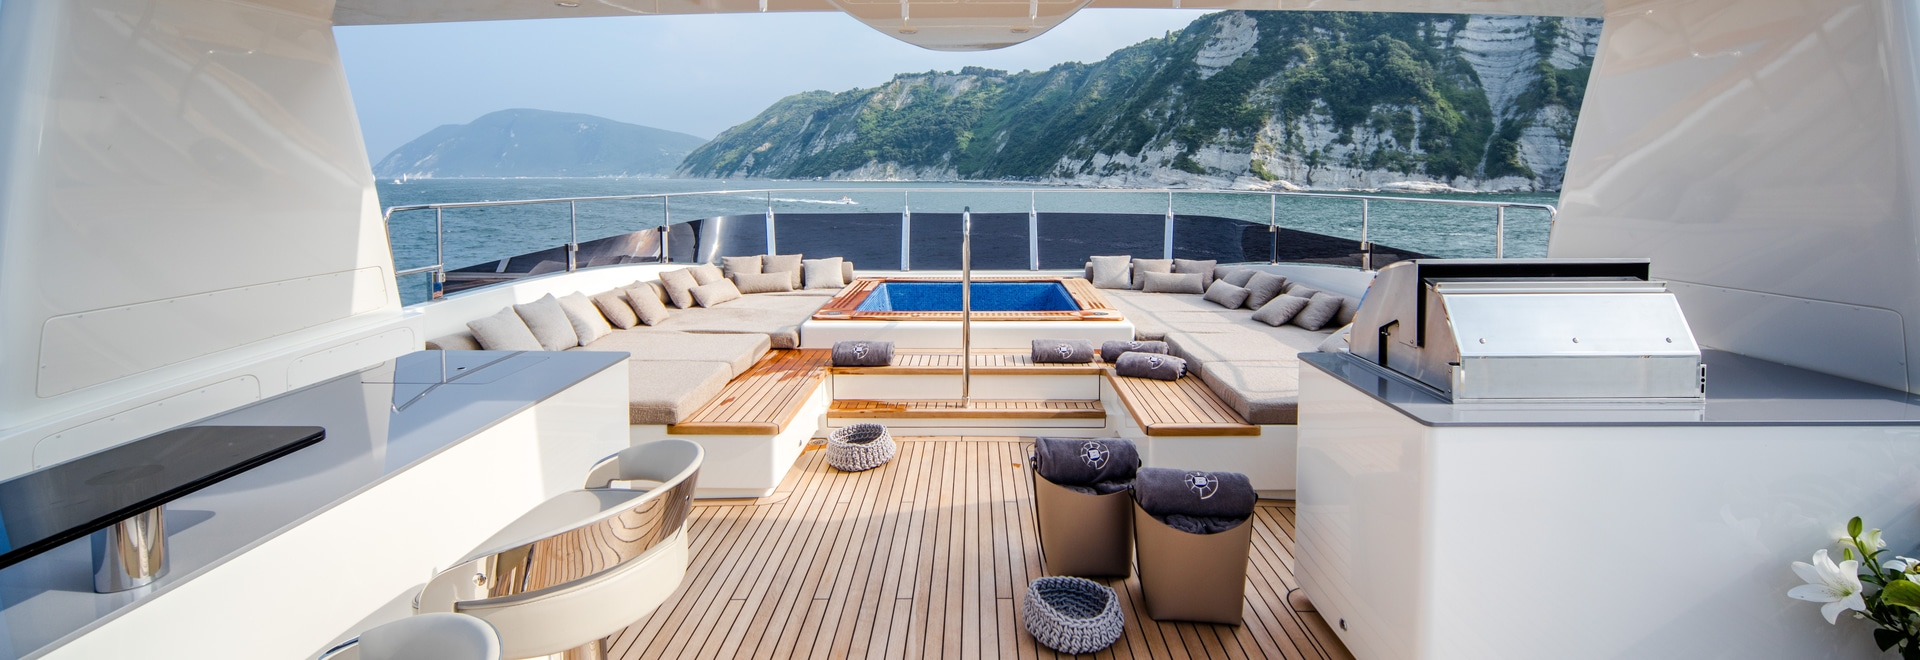 Lapitec sets sail for new horizons in the Cantieri delle Marche yacht